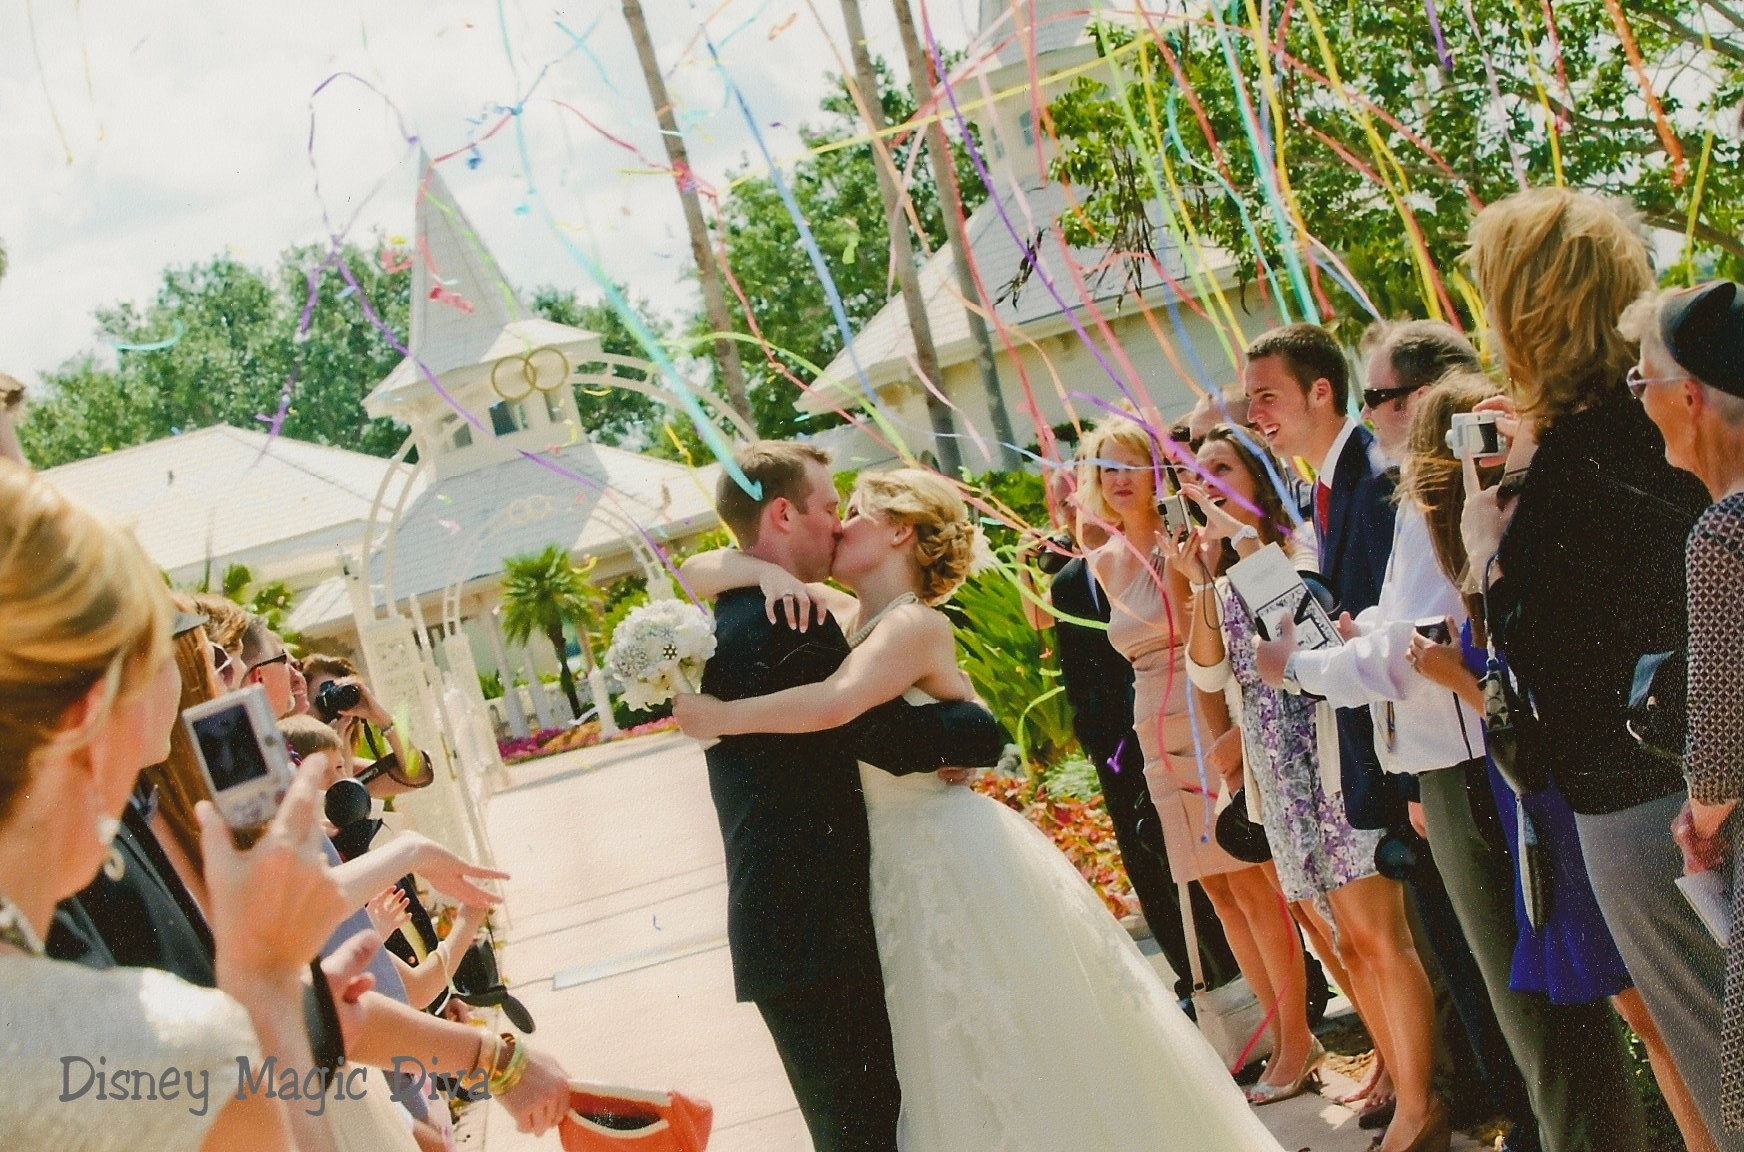 Throwback Thursday: Tips to Make Your Disney Wedding Dream Come True